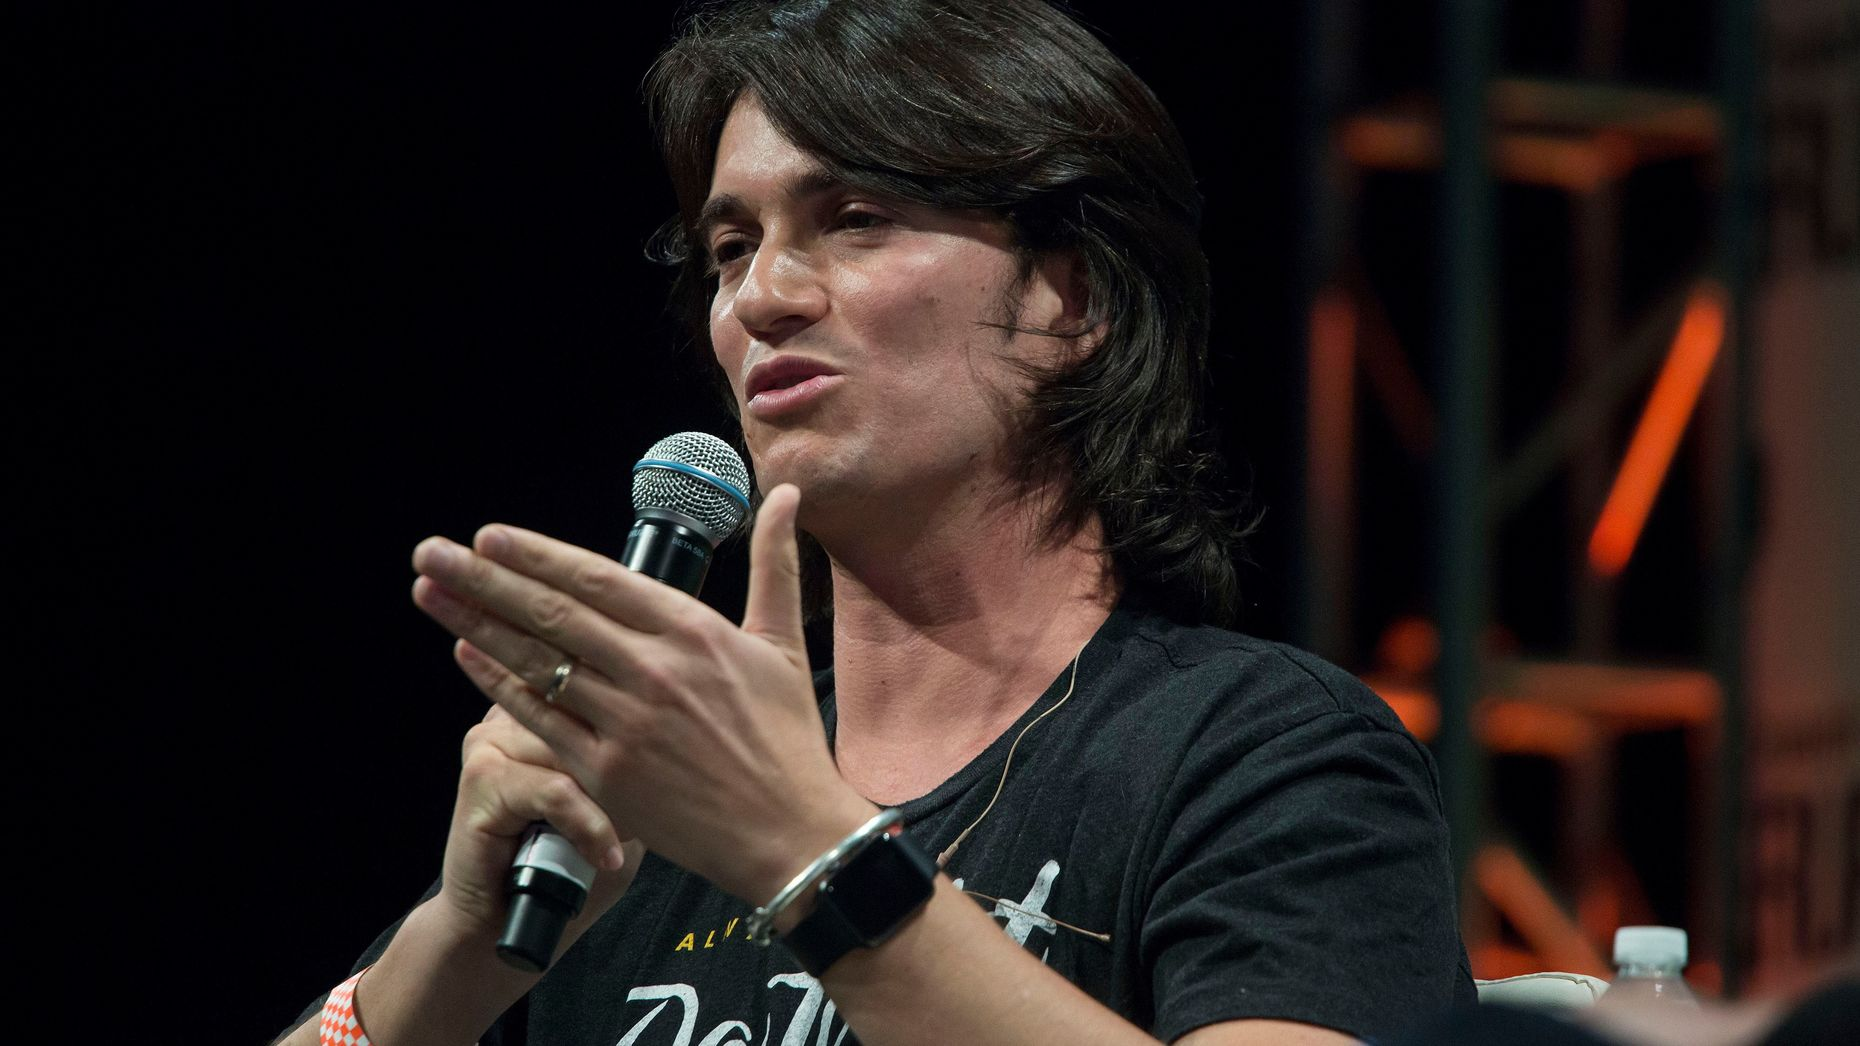 WeWork co-founder and CEO Adam Neumann. Photo by Bloomberg.